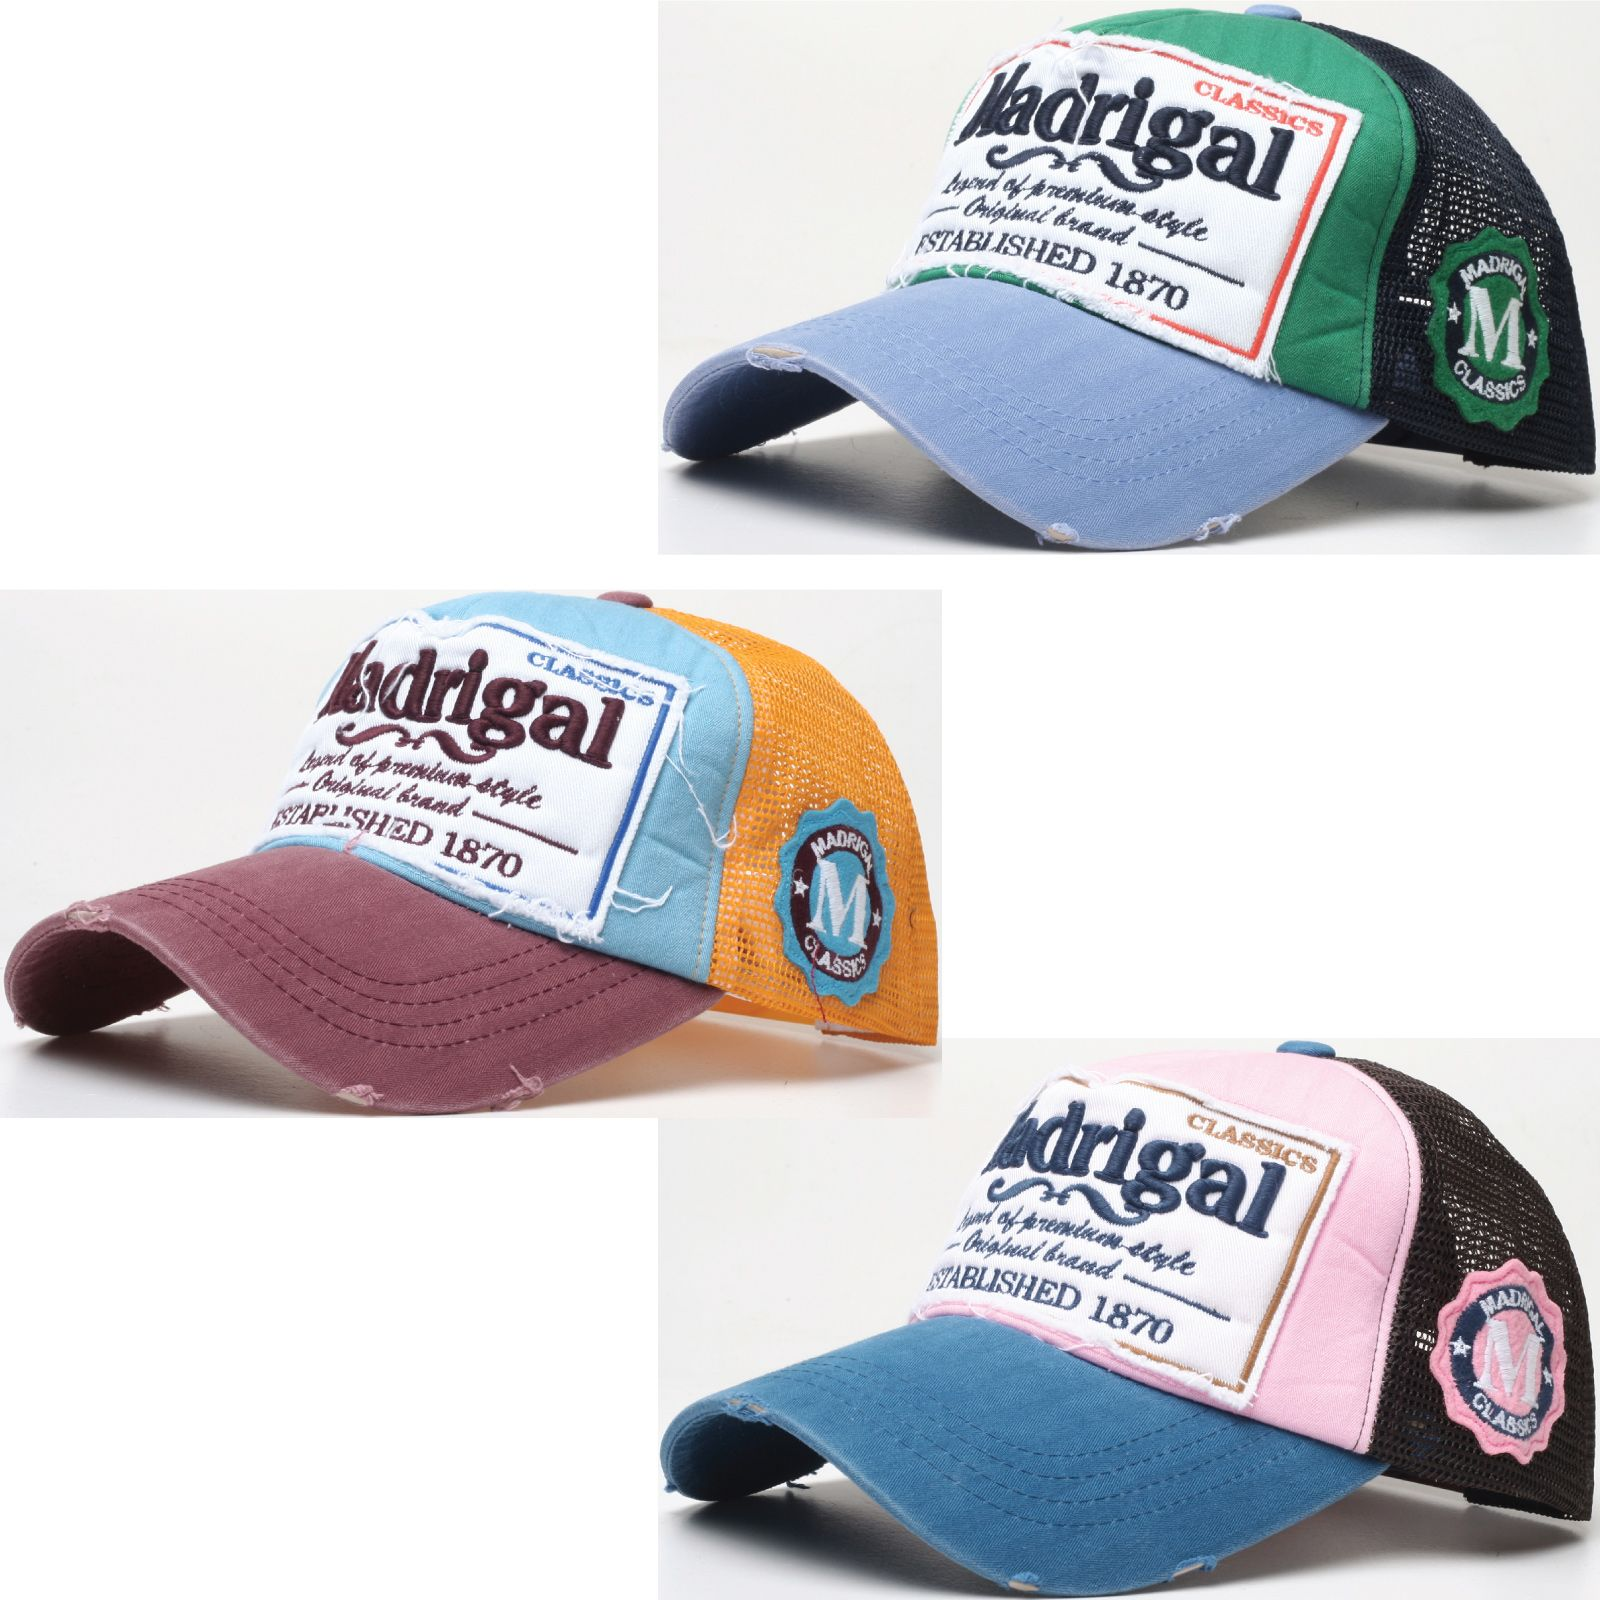 183e2677c0aa3 M30 New Vintage Distressed Patch Washed Design Cool Mesh Truckers Ball Cap